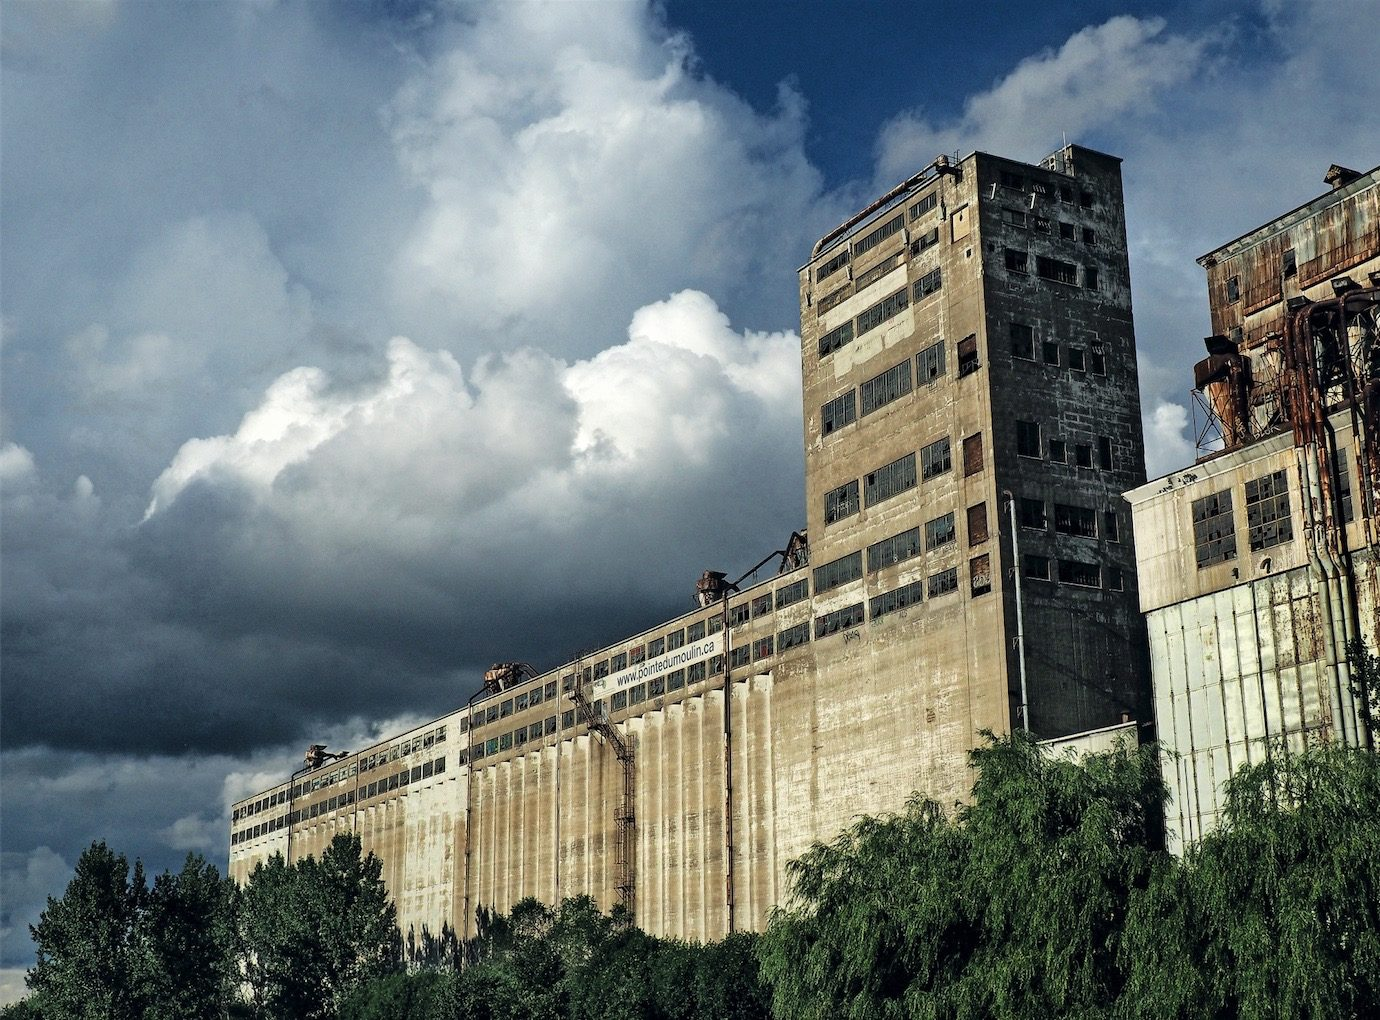 montreal-architecture-abandoned-silos